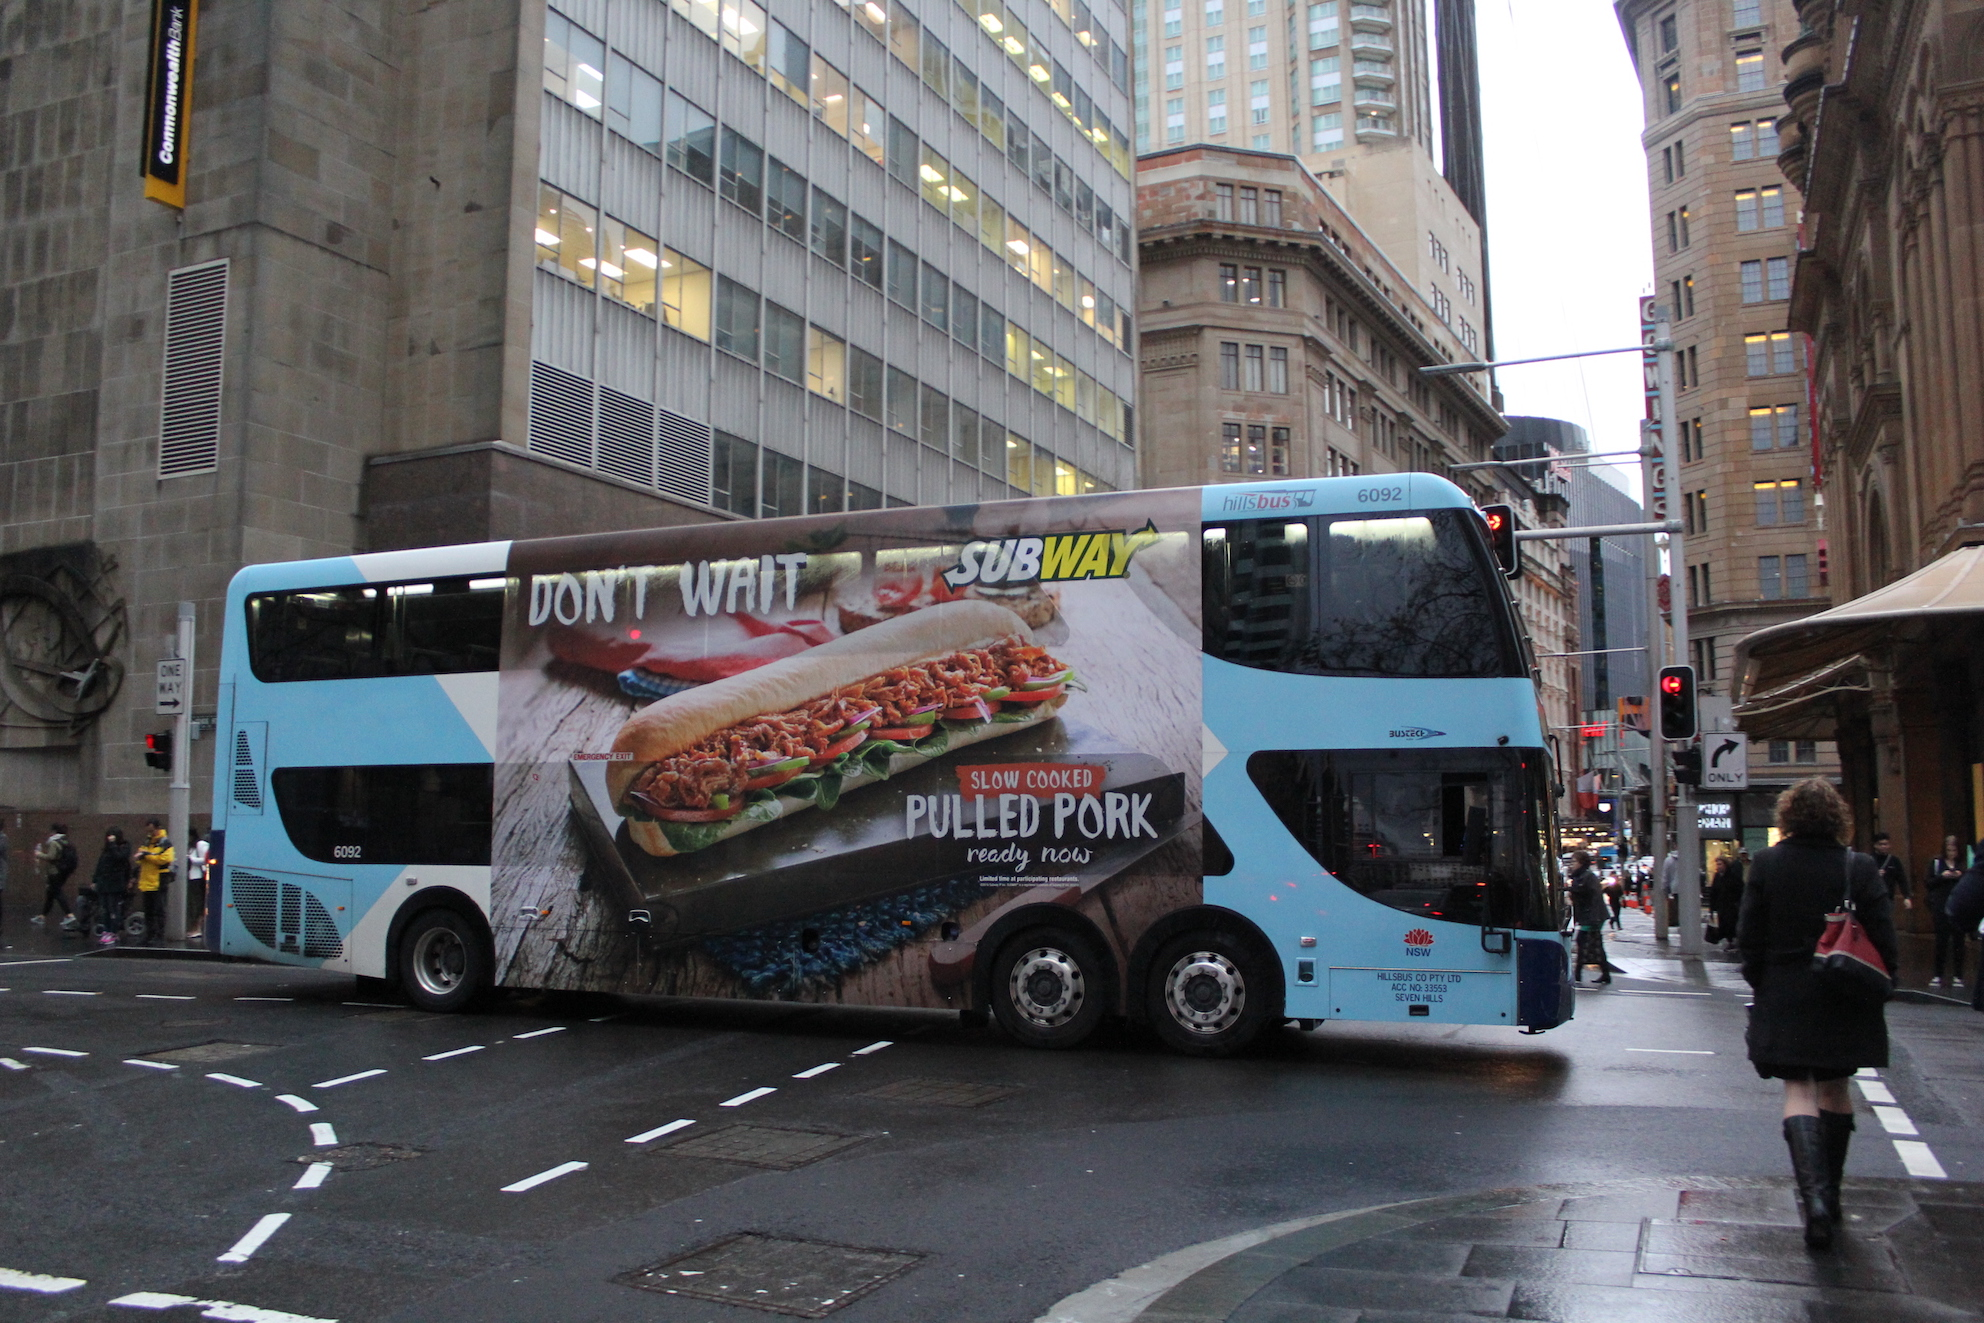 SUBWAY bus with advertising